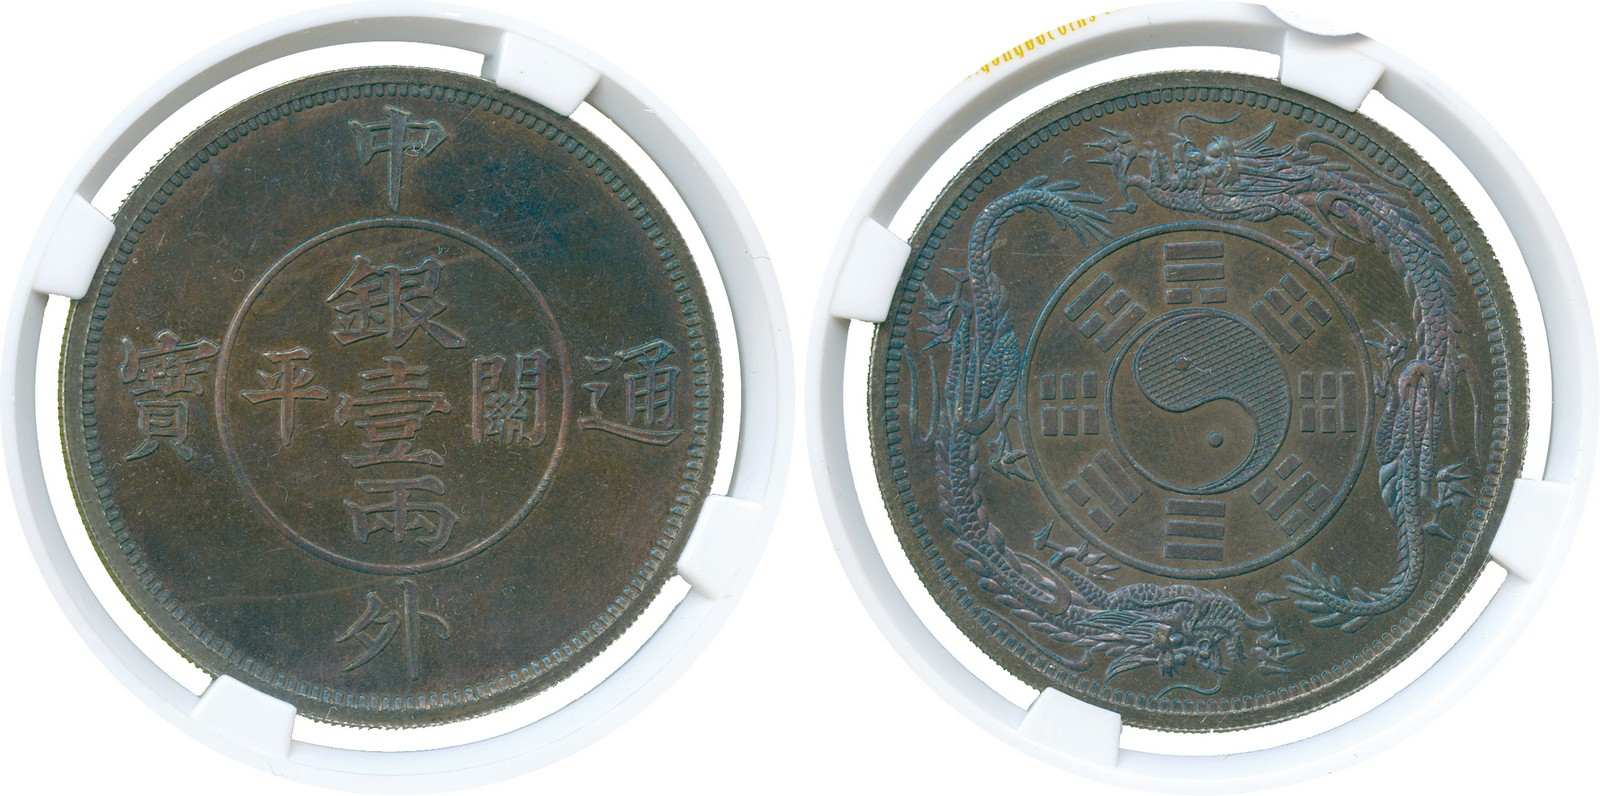 Lot 121 - COINS. 錢幣, CHINA - EMPIRE, GENERAL ISSUES, 中國 - 帝國中央發行, General Issues: Silver Pattern Tael, ND (c.